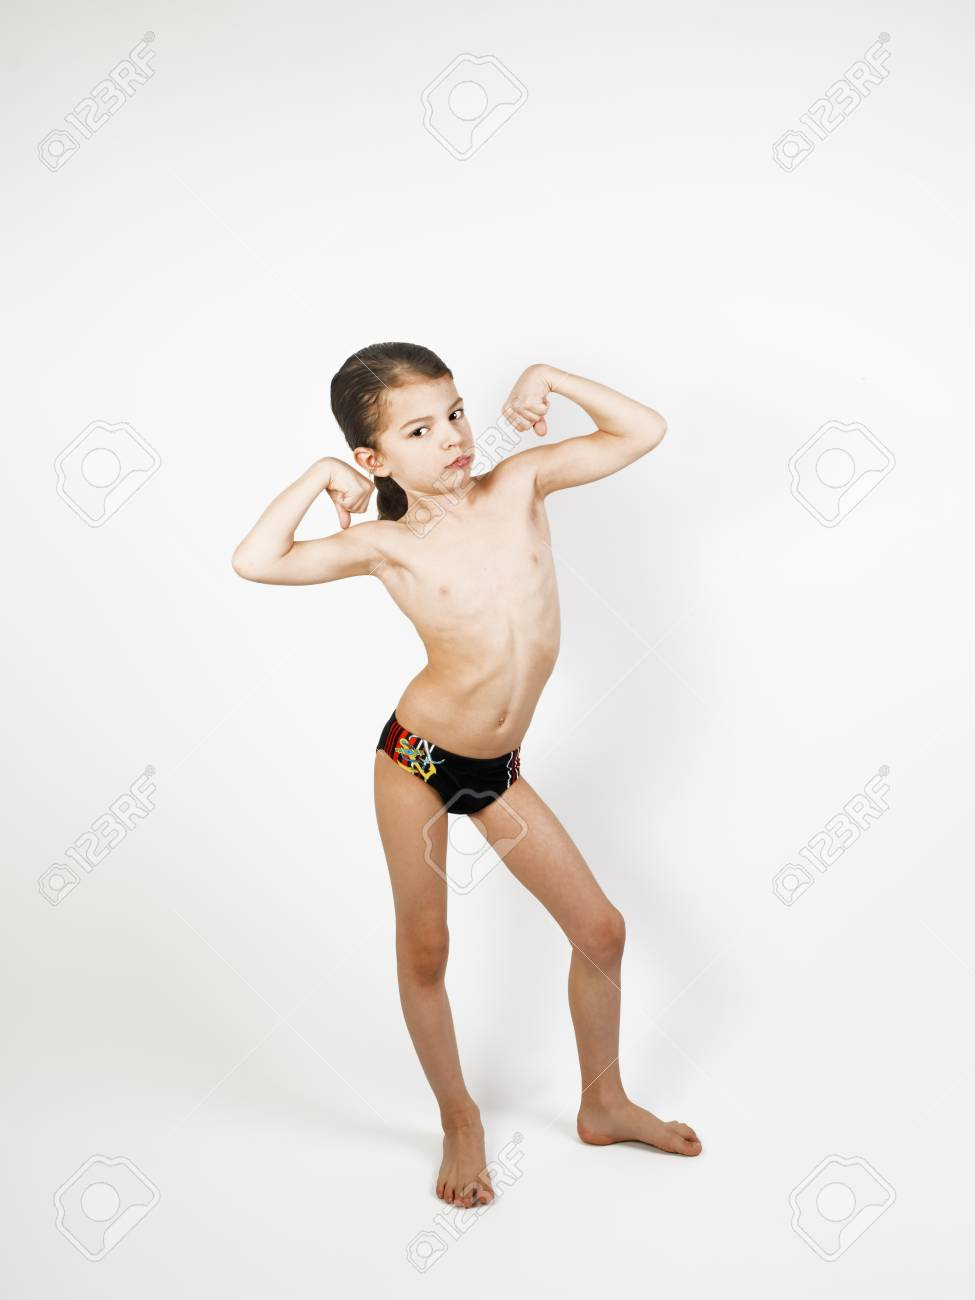 8ce89d665d831 Happy little boy triumphing with raised hands, on a light background Stock  Photo - 98290915